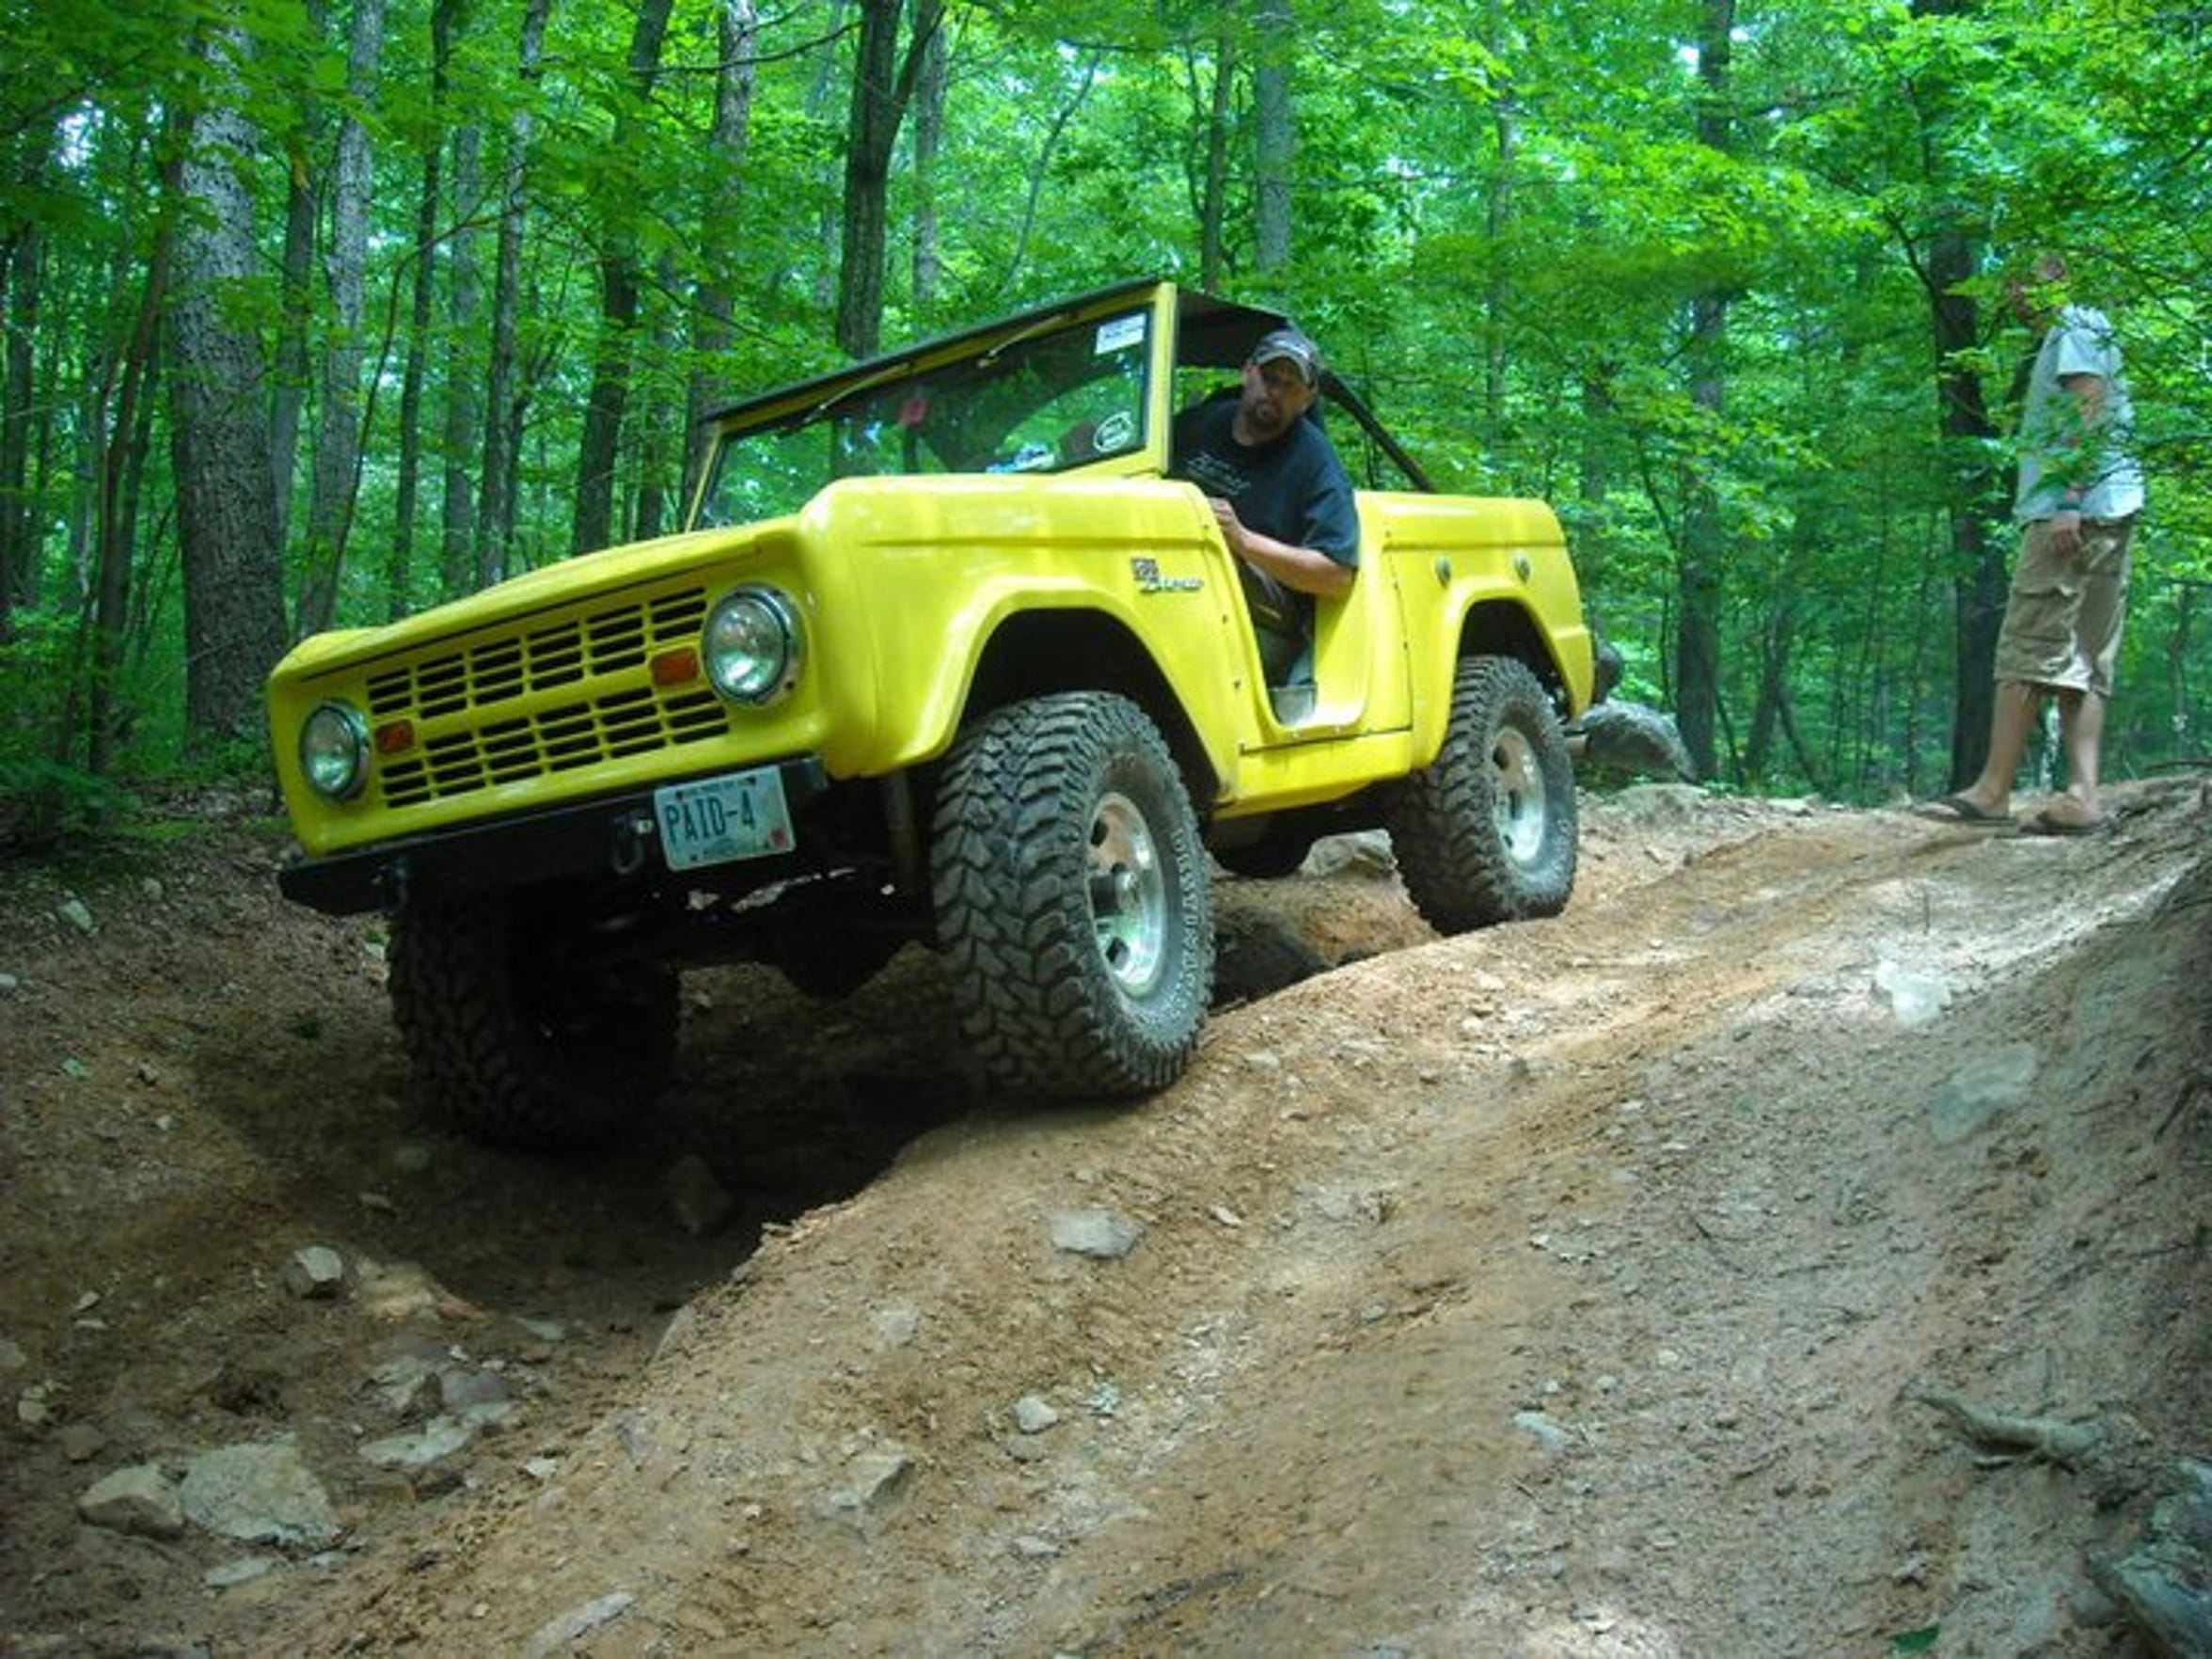 Randy Wickman, 54, of Rindge, Hampshire, takes his 1973 Ford Bronco off-roading.